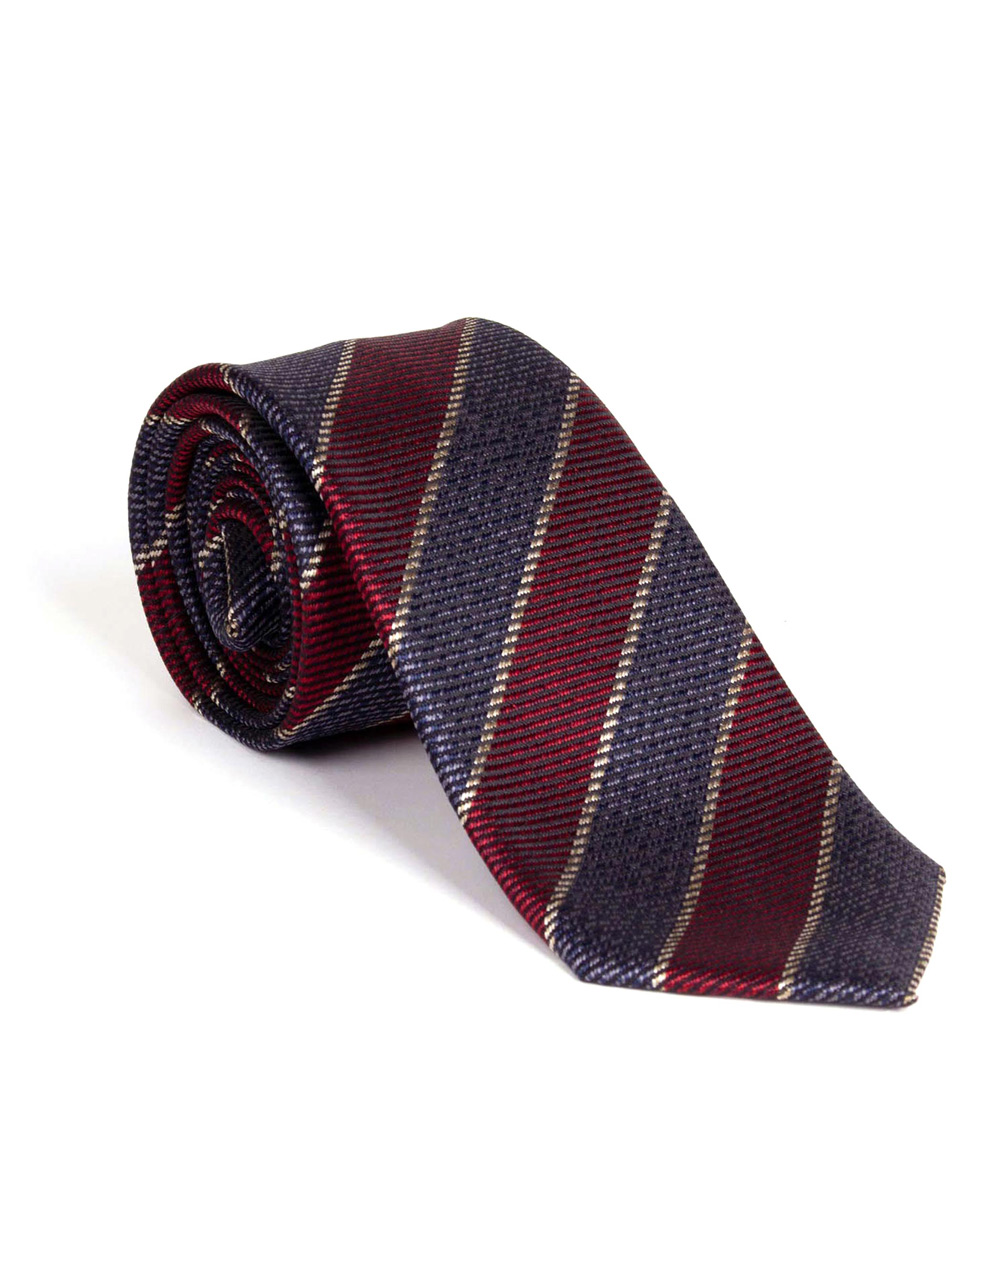 Diagonal striped tie in Navy and Bordo